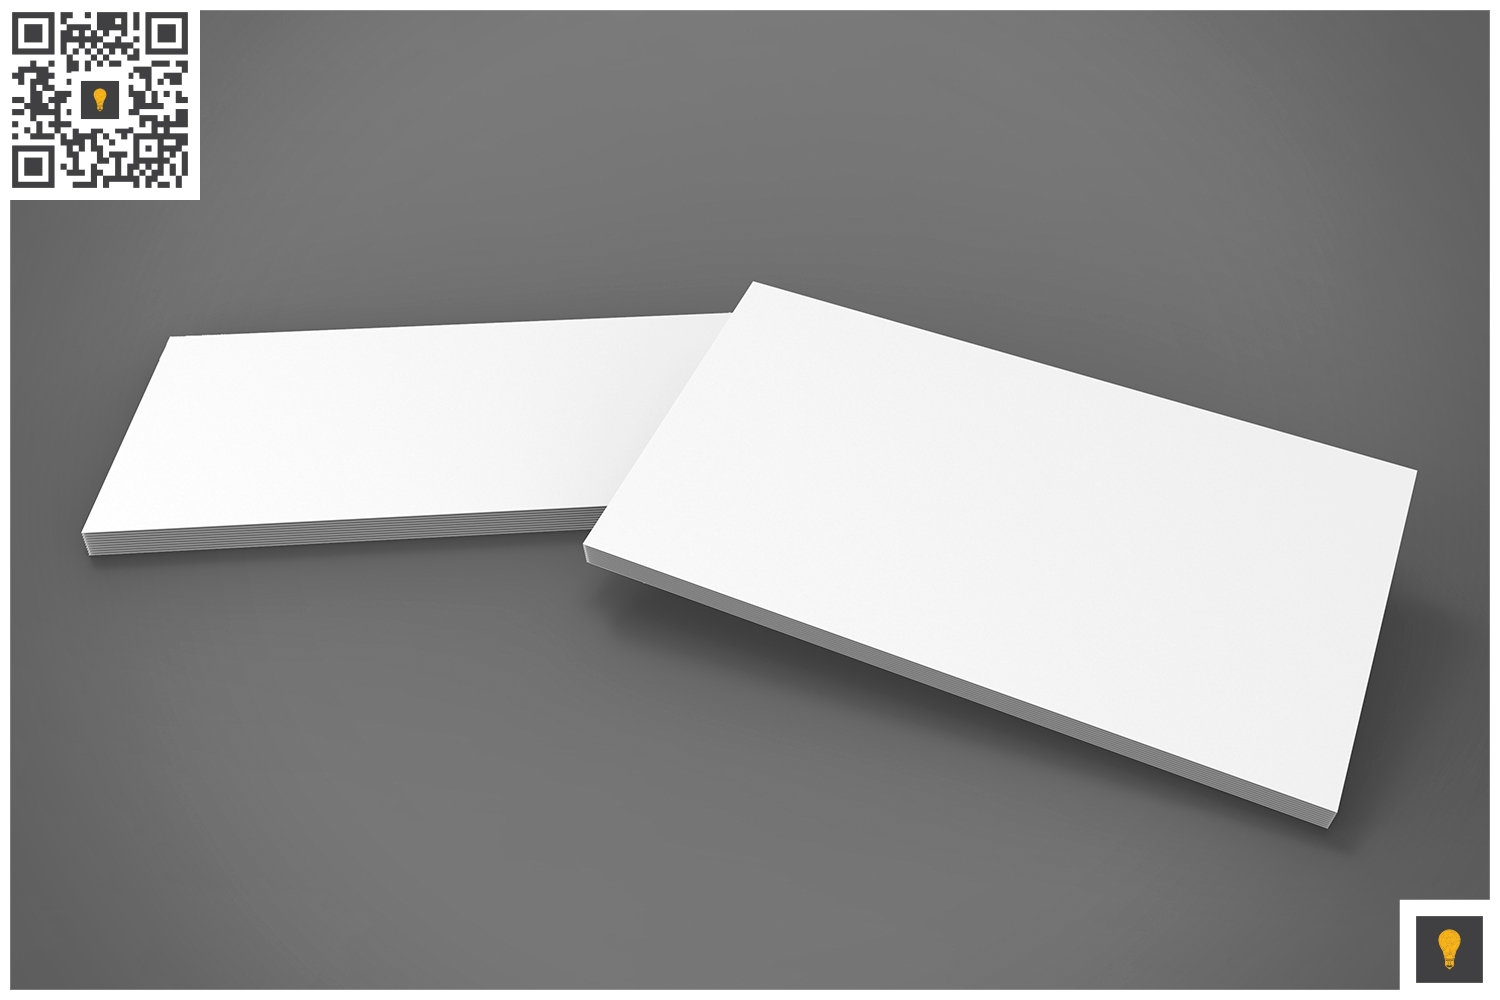 Business Card 3D Render example image 4